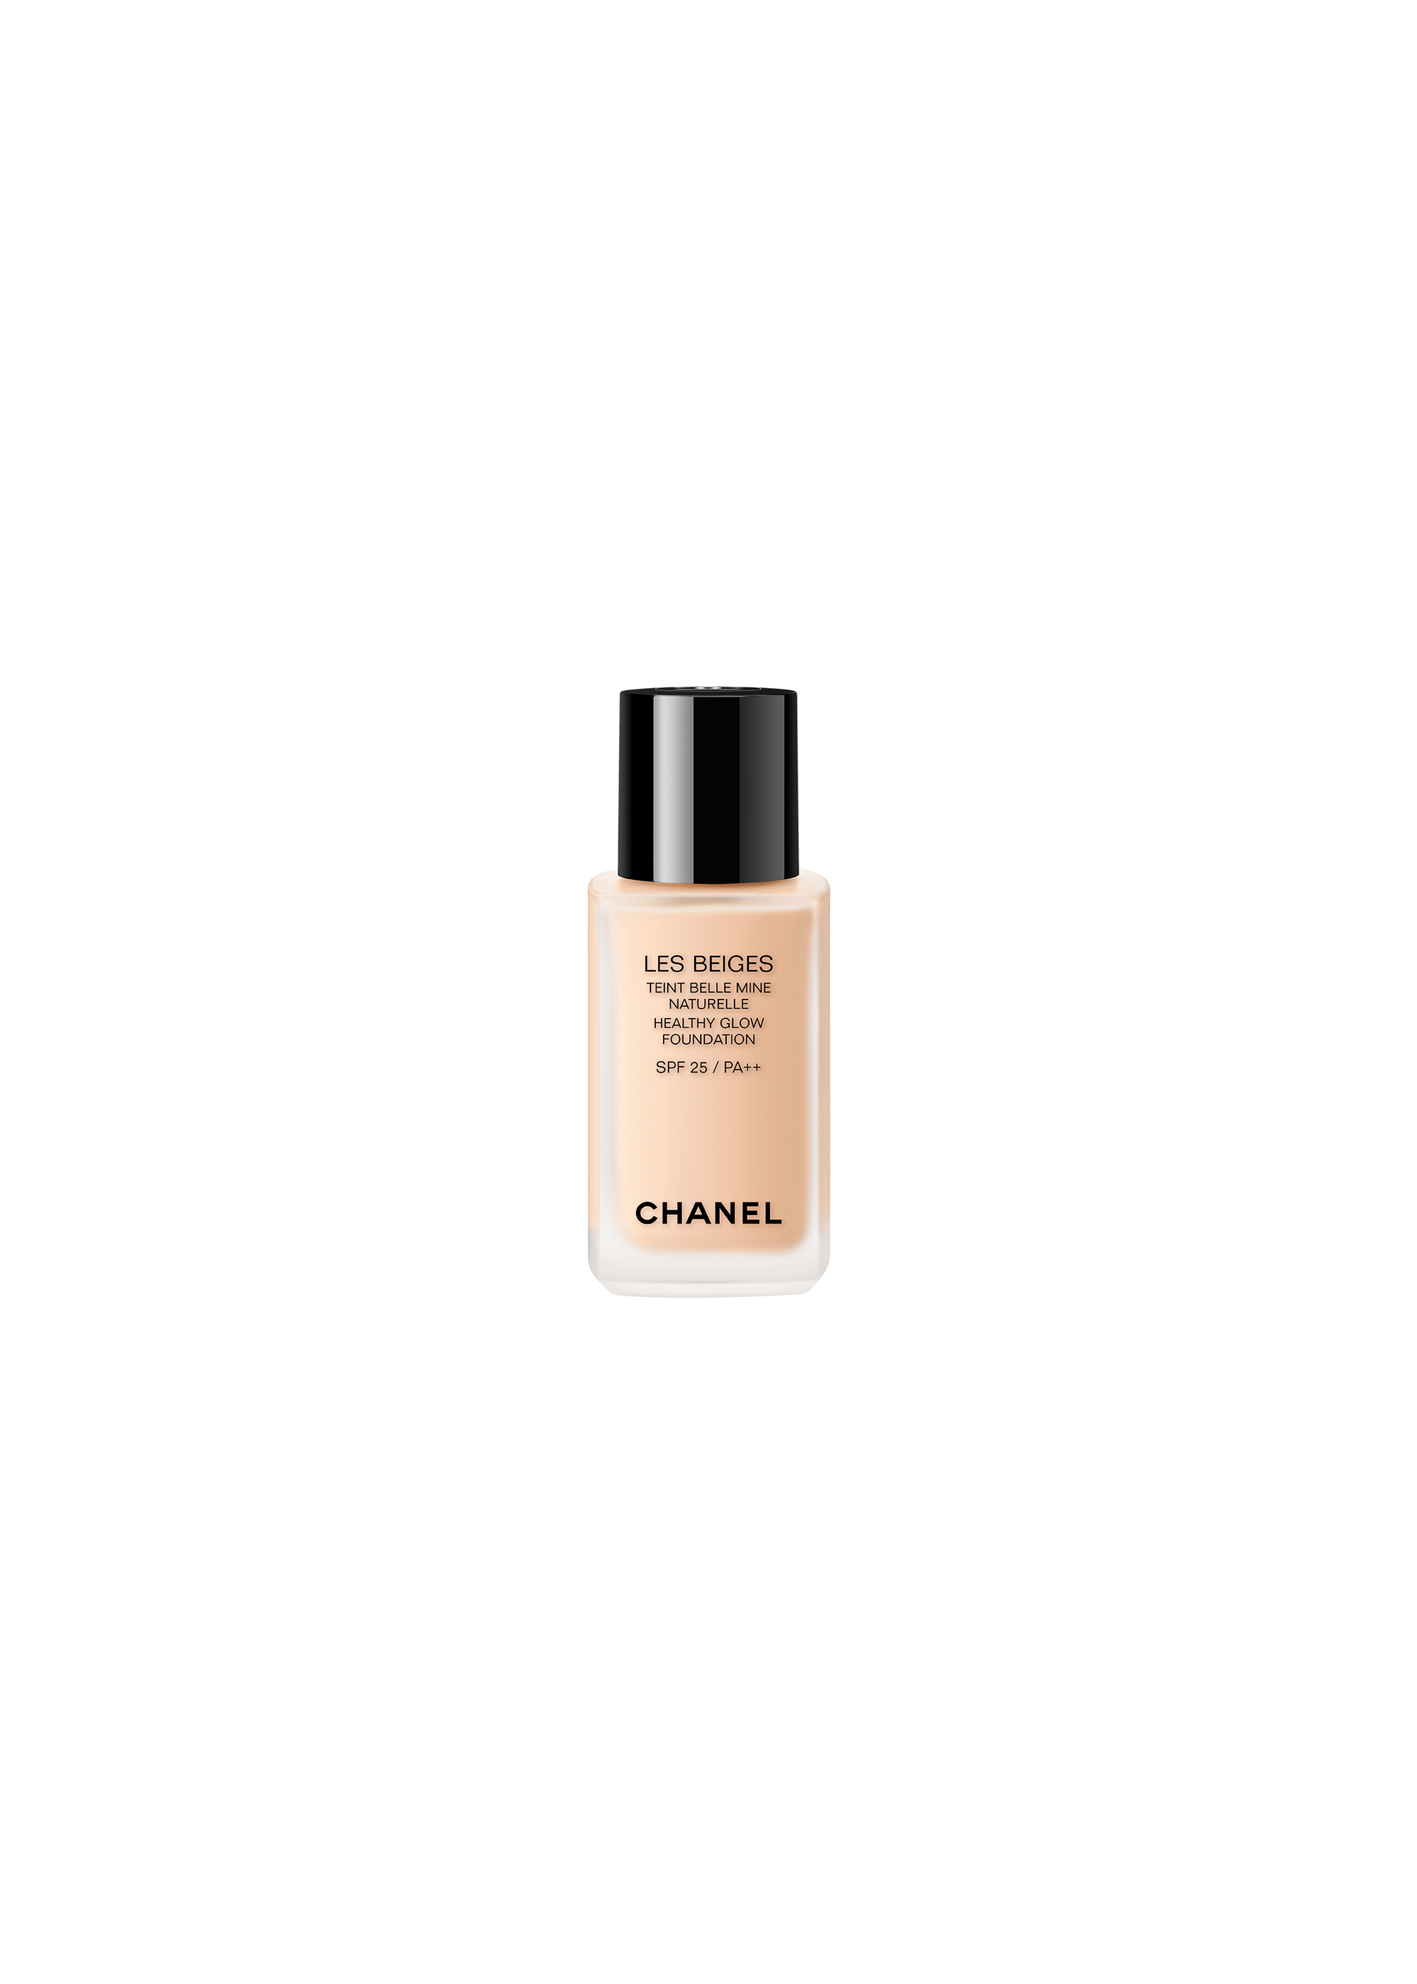 For hydration with a seamless finish, try Chanel's Les Beiges Healthy Glow Foundation, RM200